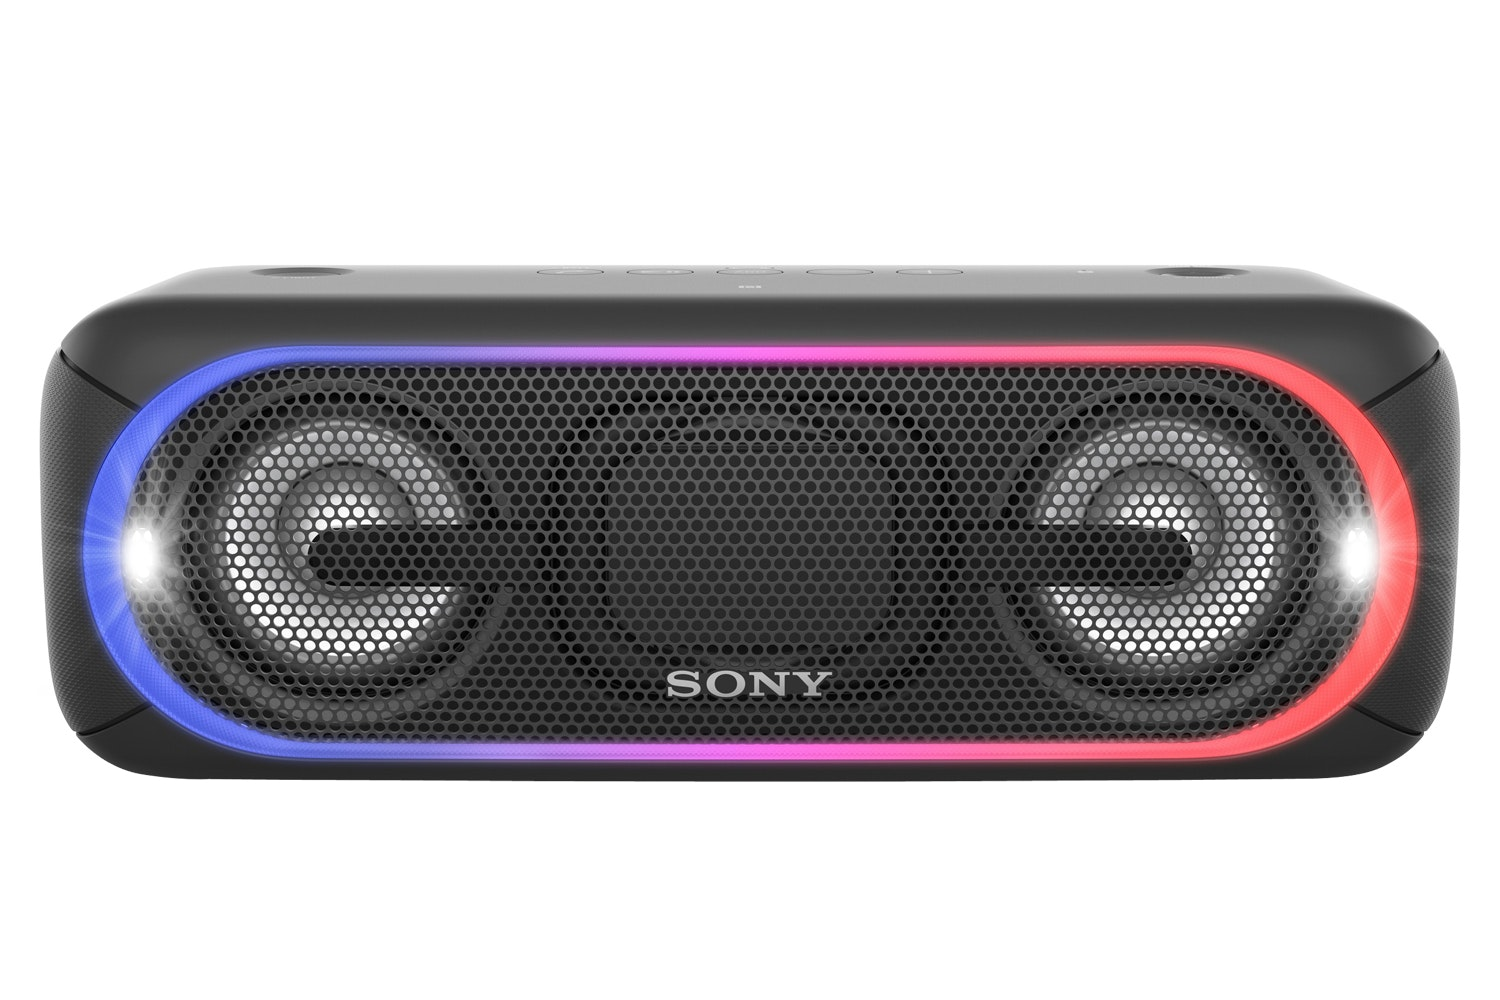 Sony Wireless Speaker | SRSXB40B.EU8